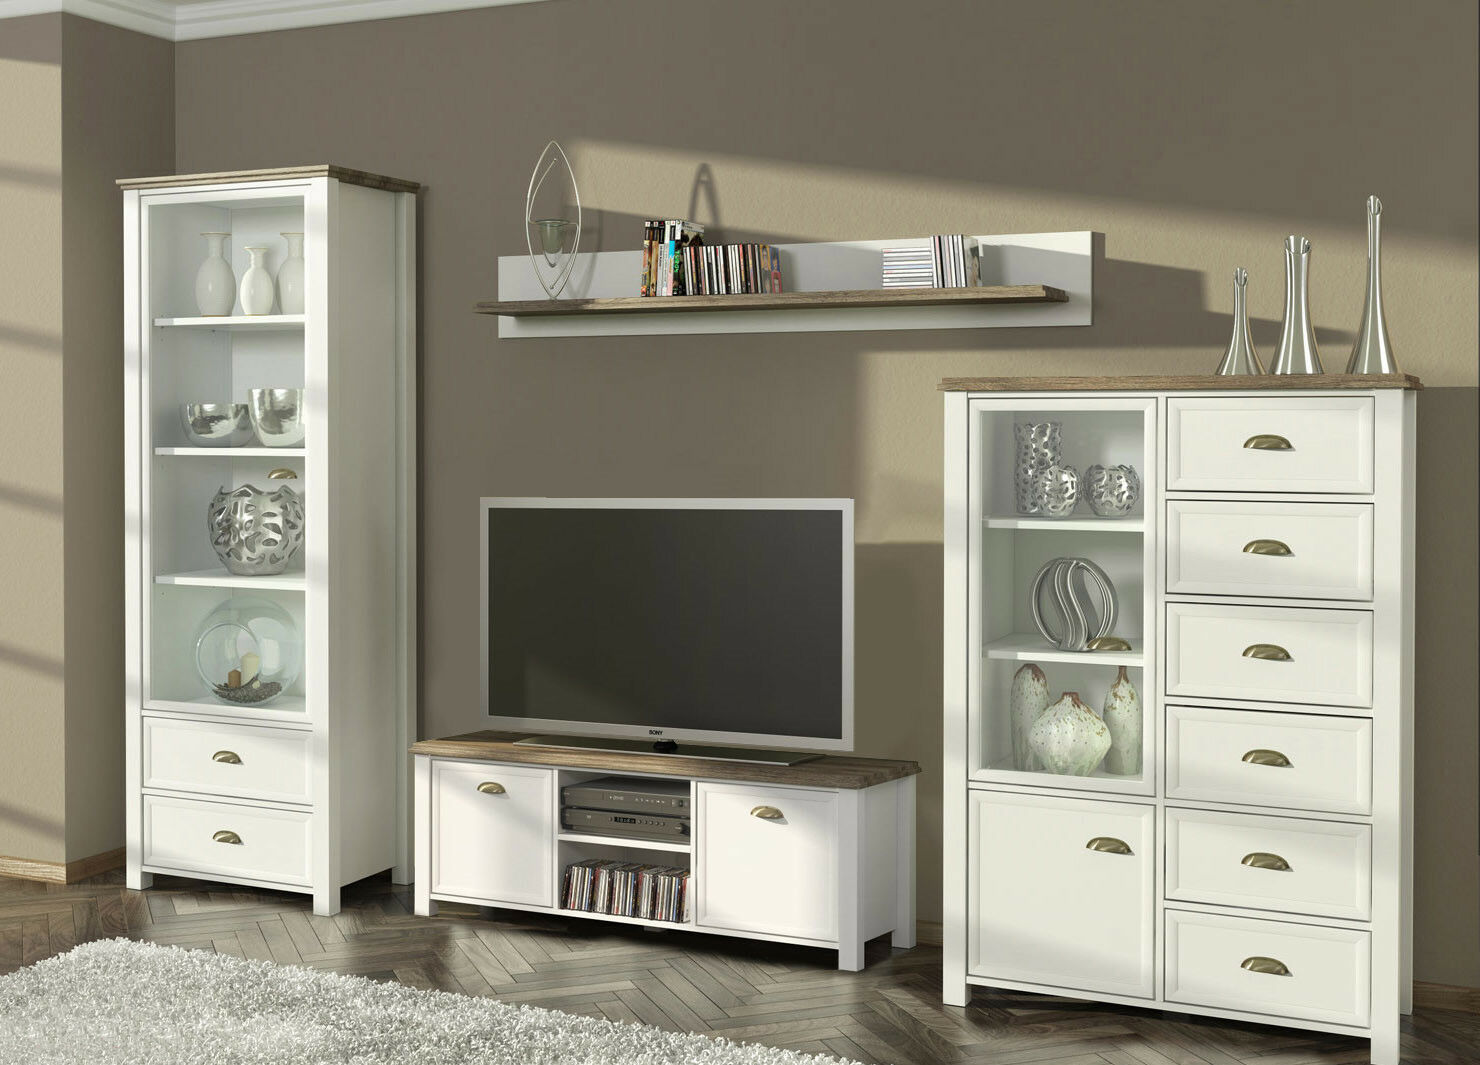 bauwand mehr als 2000 angebote fotos preise. Black Bedroom Furniture Sets. Home Design Ideas